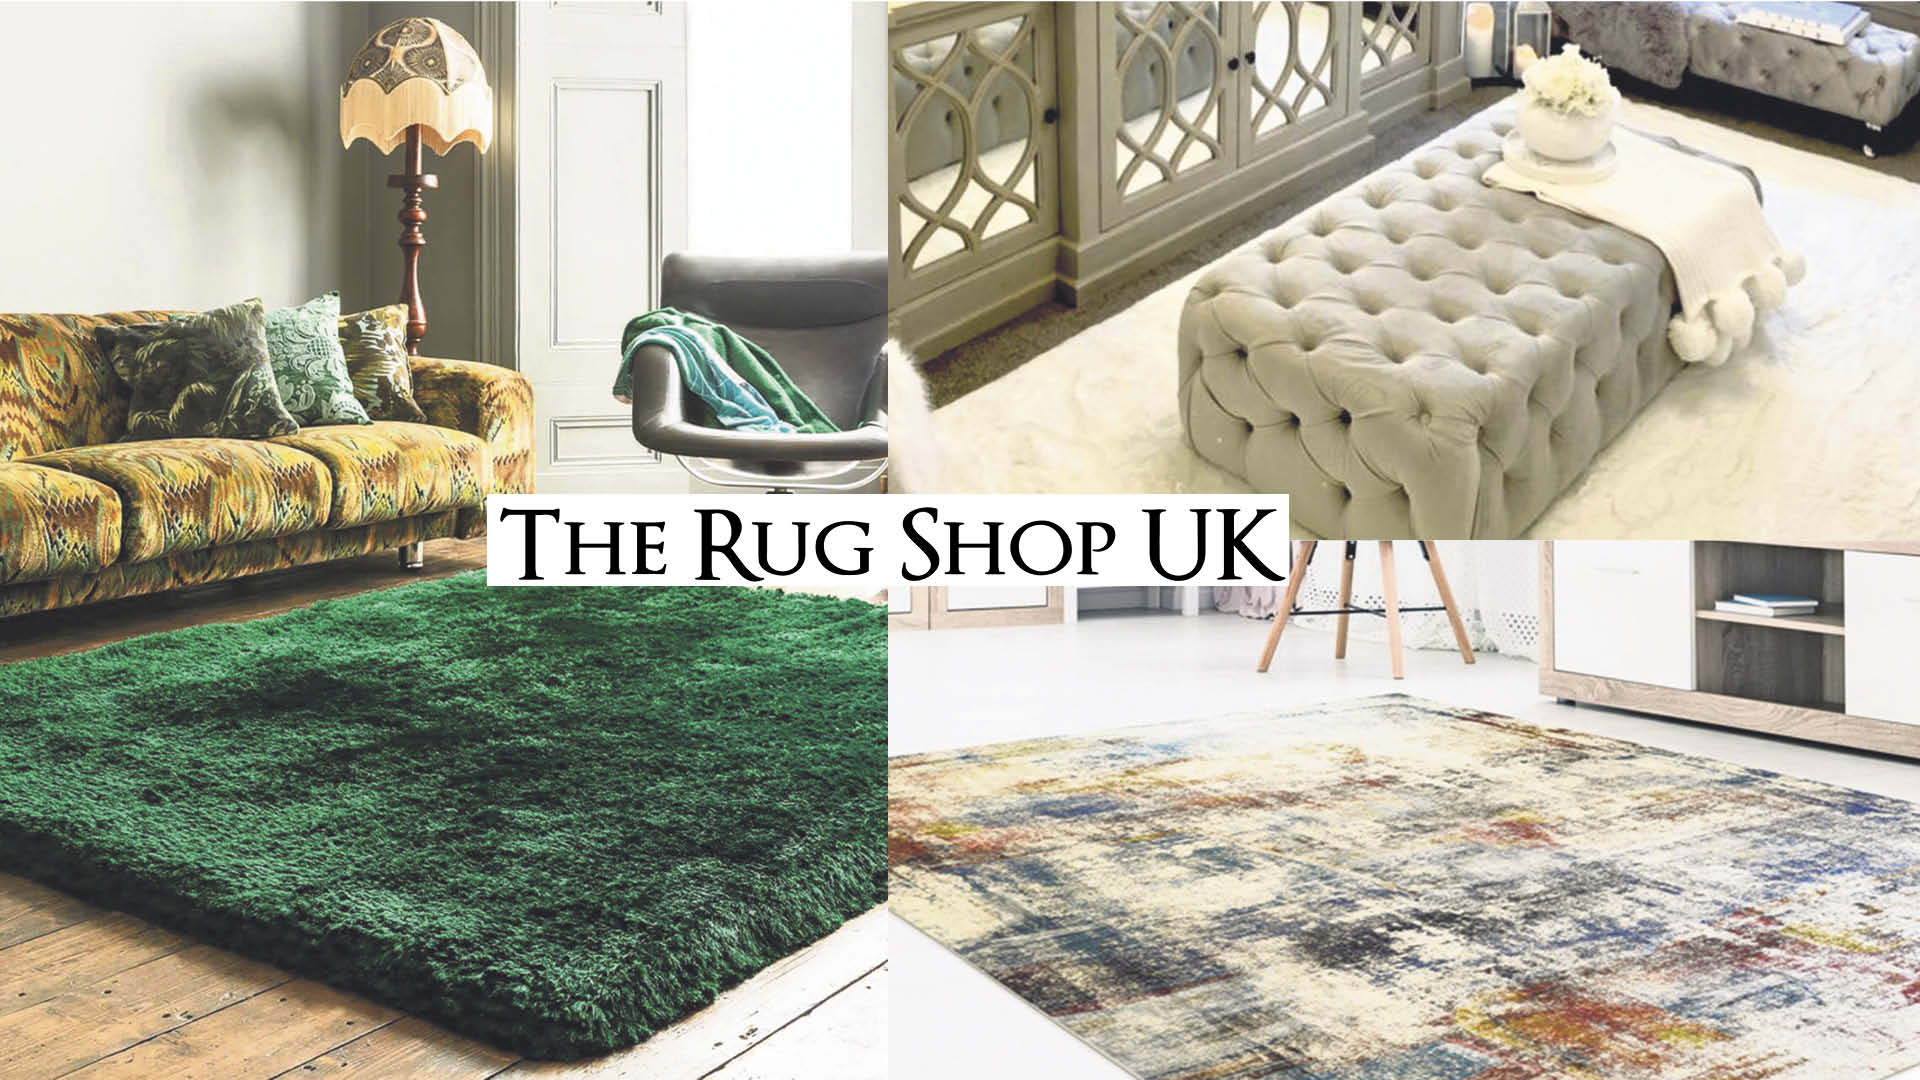 Win a cosy and luxurious Rabbit rug for your home Worth £169!